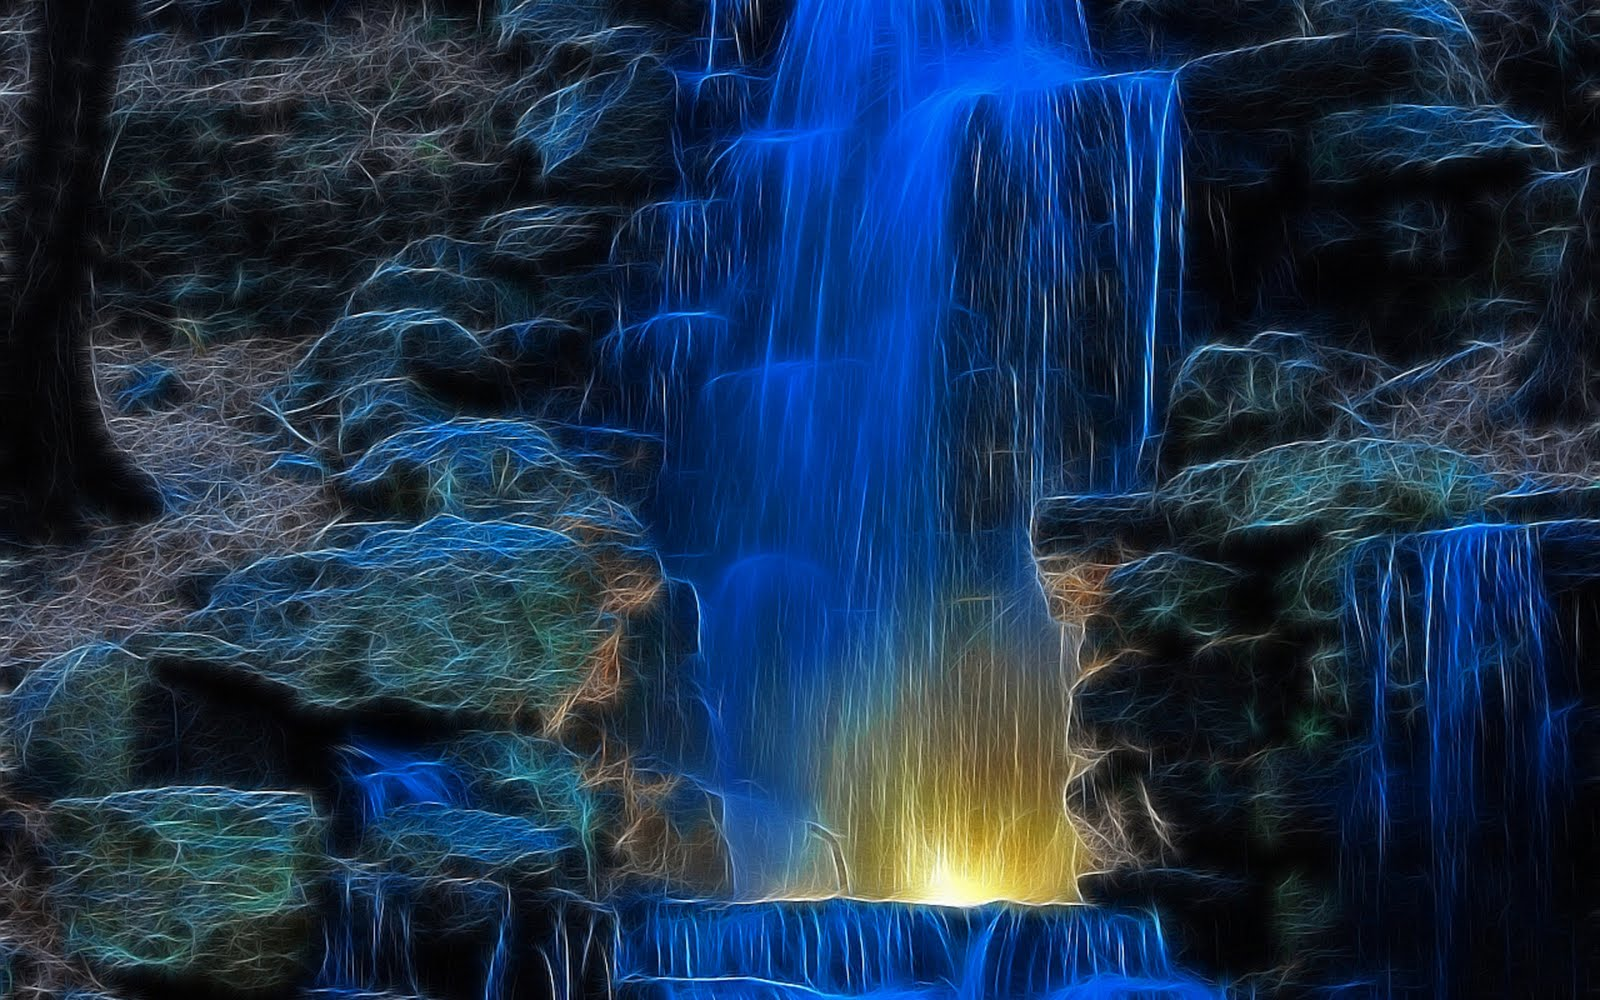 is under the waterfall wallpapers category of hd wallpapers 1600x1000